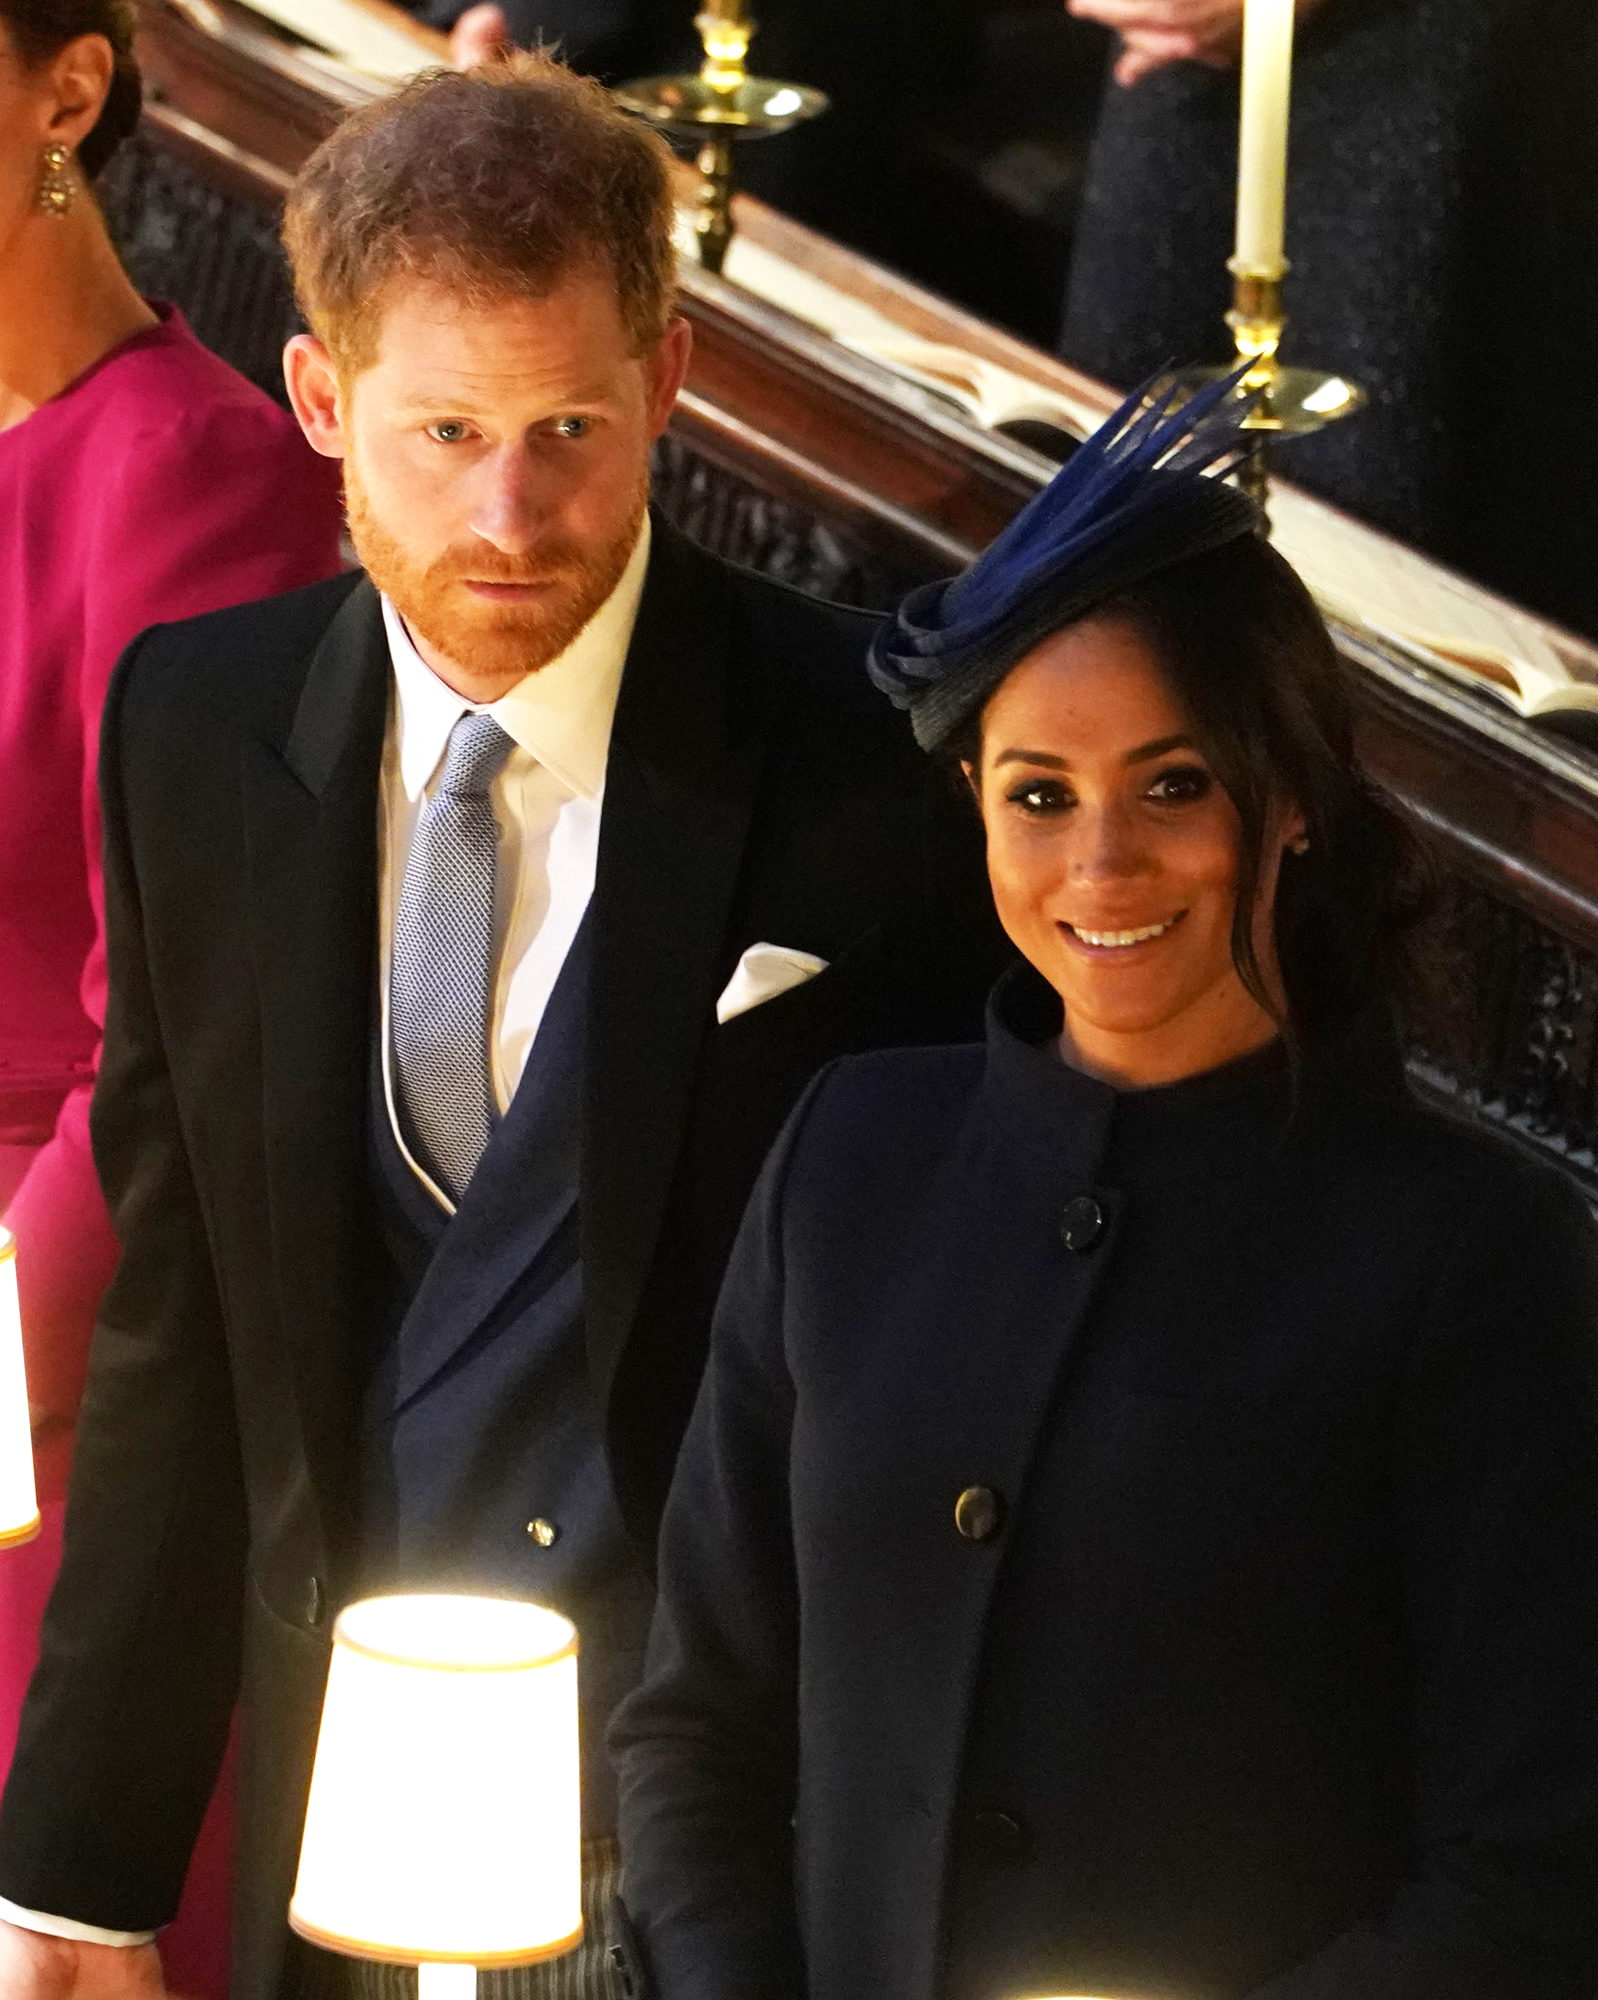 Will Meghan Markle and Prince Harry's Baby Be a U.S. Citizen? harry-meghan-1-20001